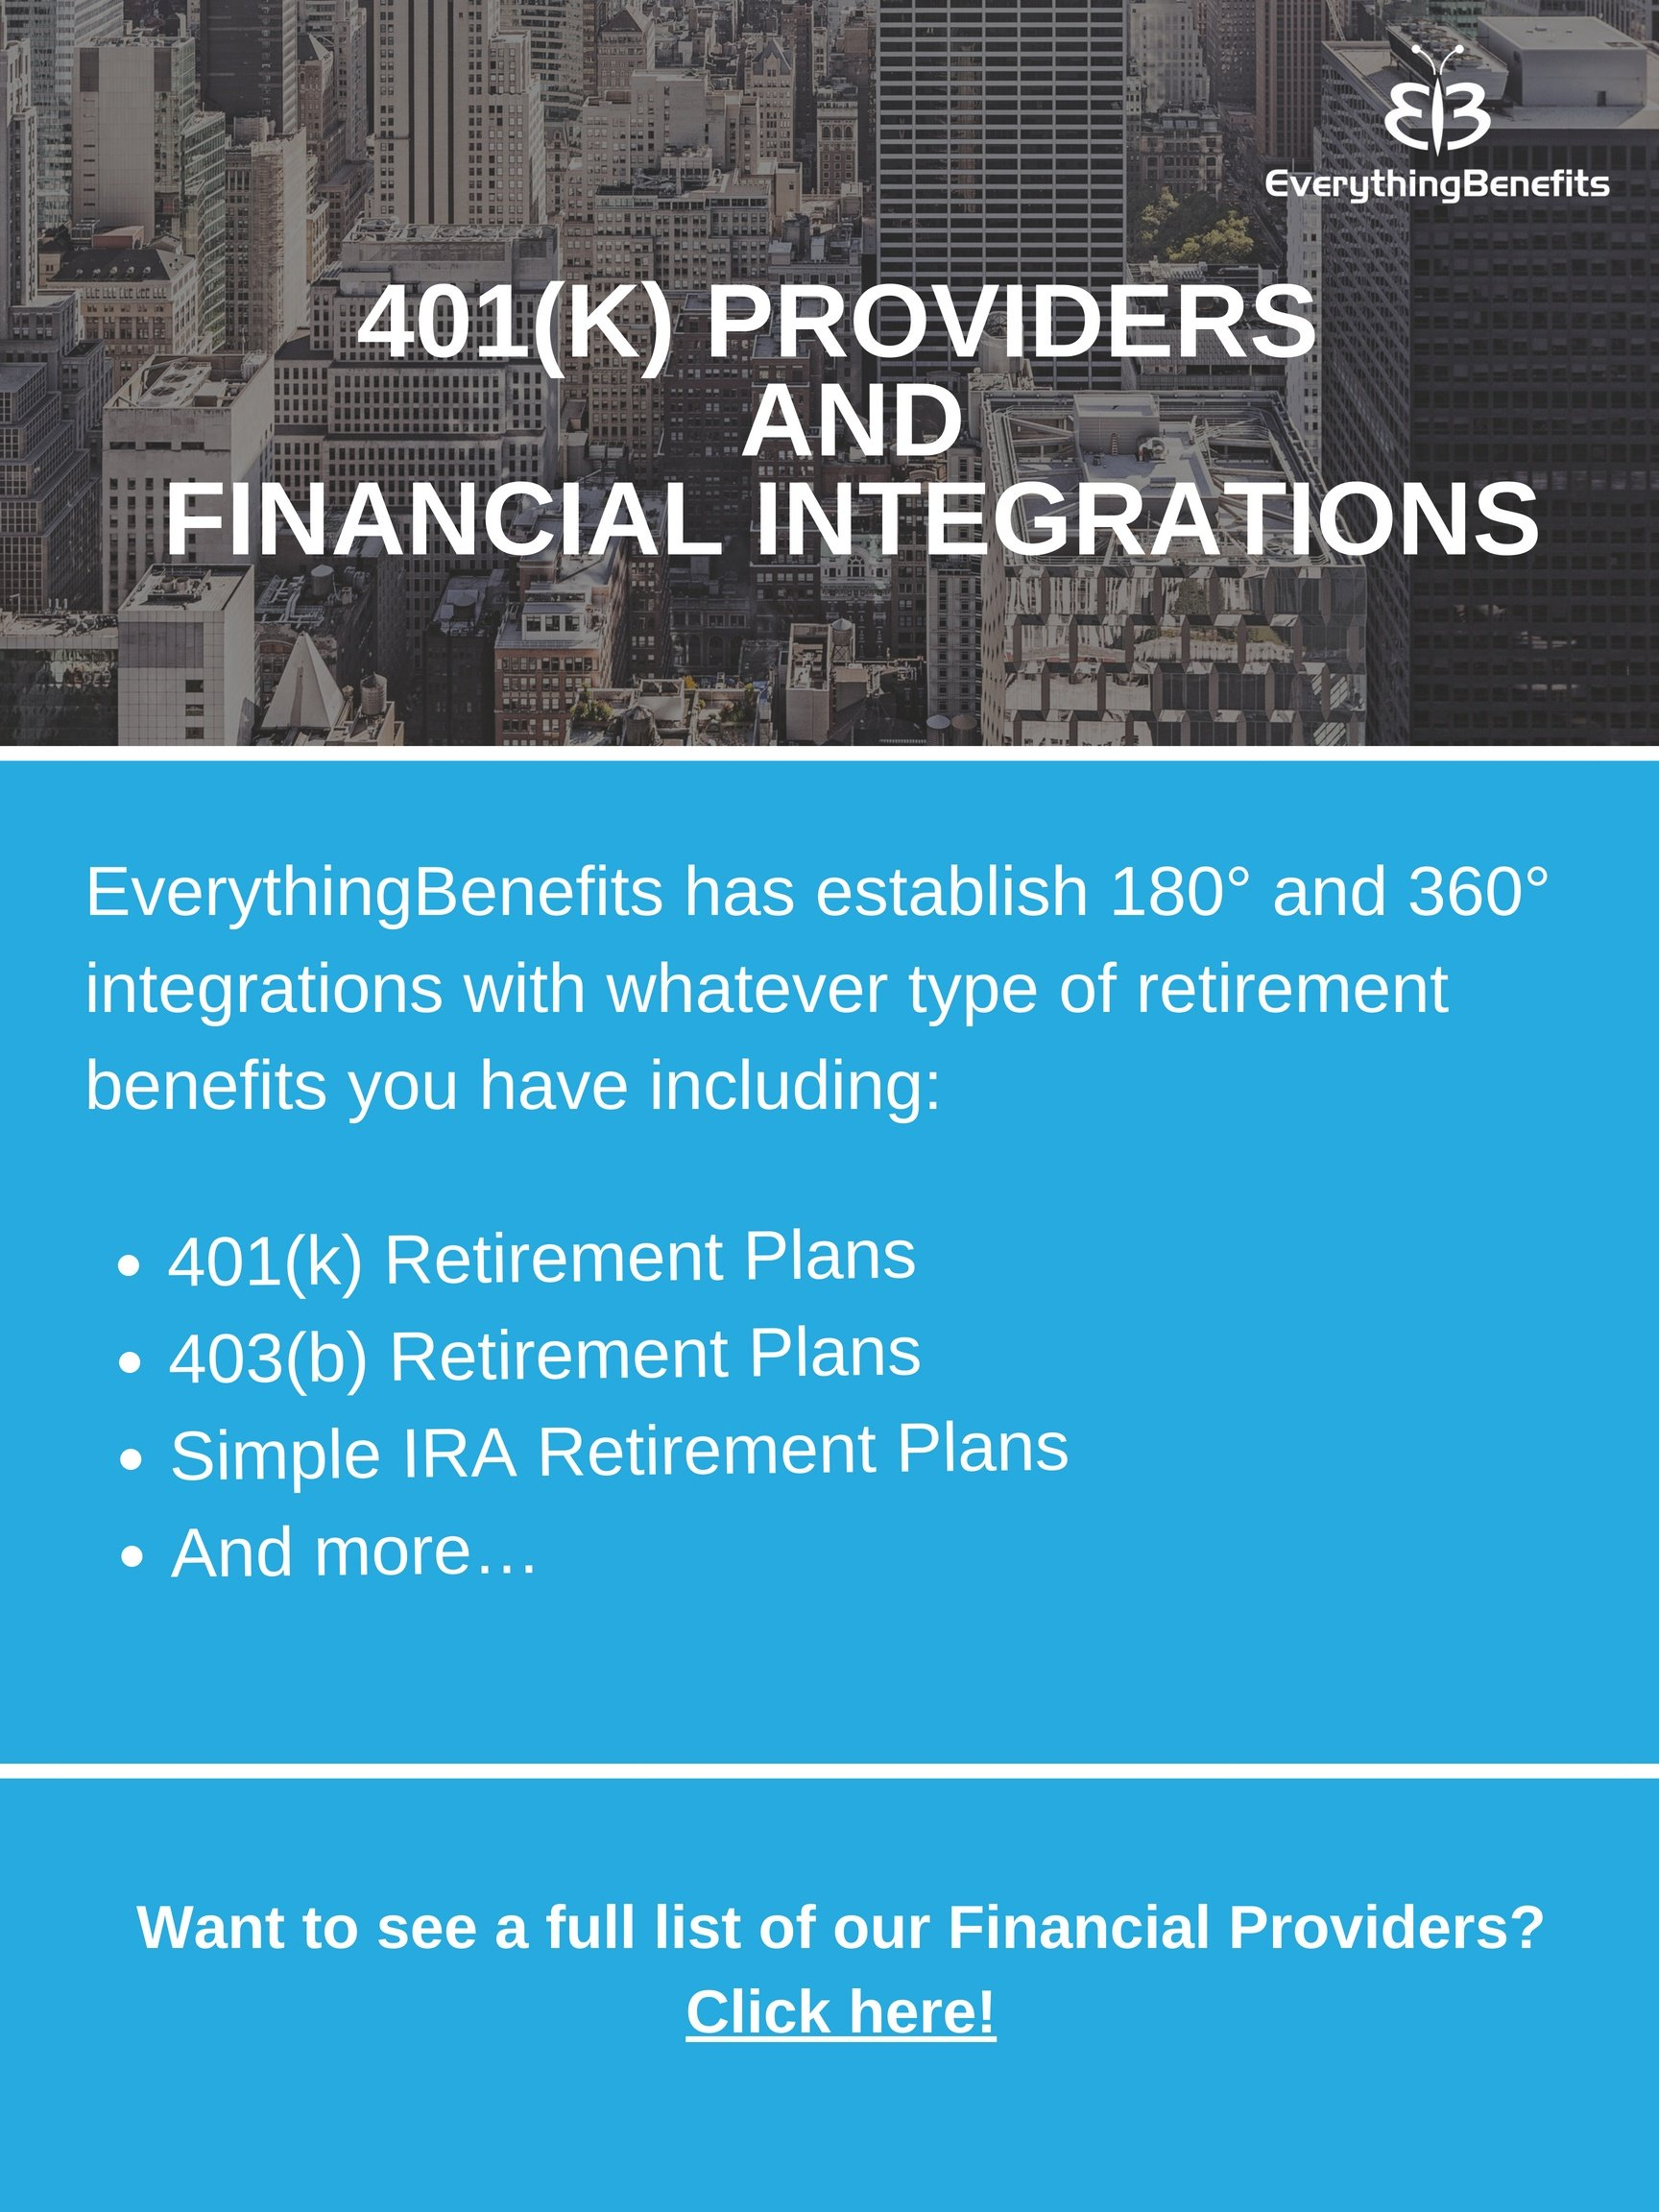 financial integrations-1.jpg